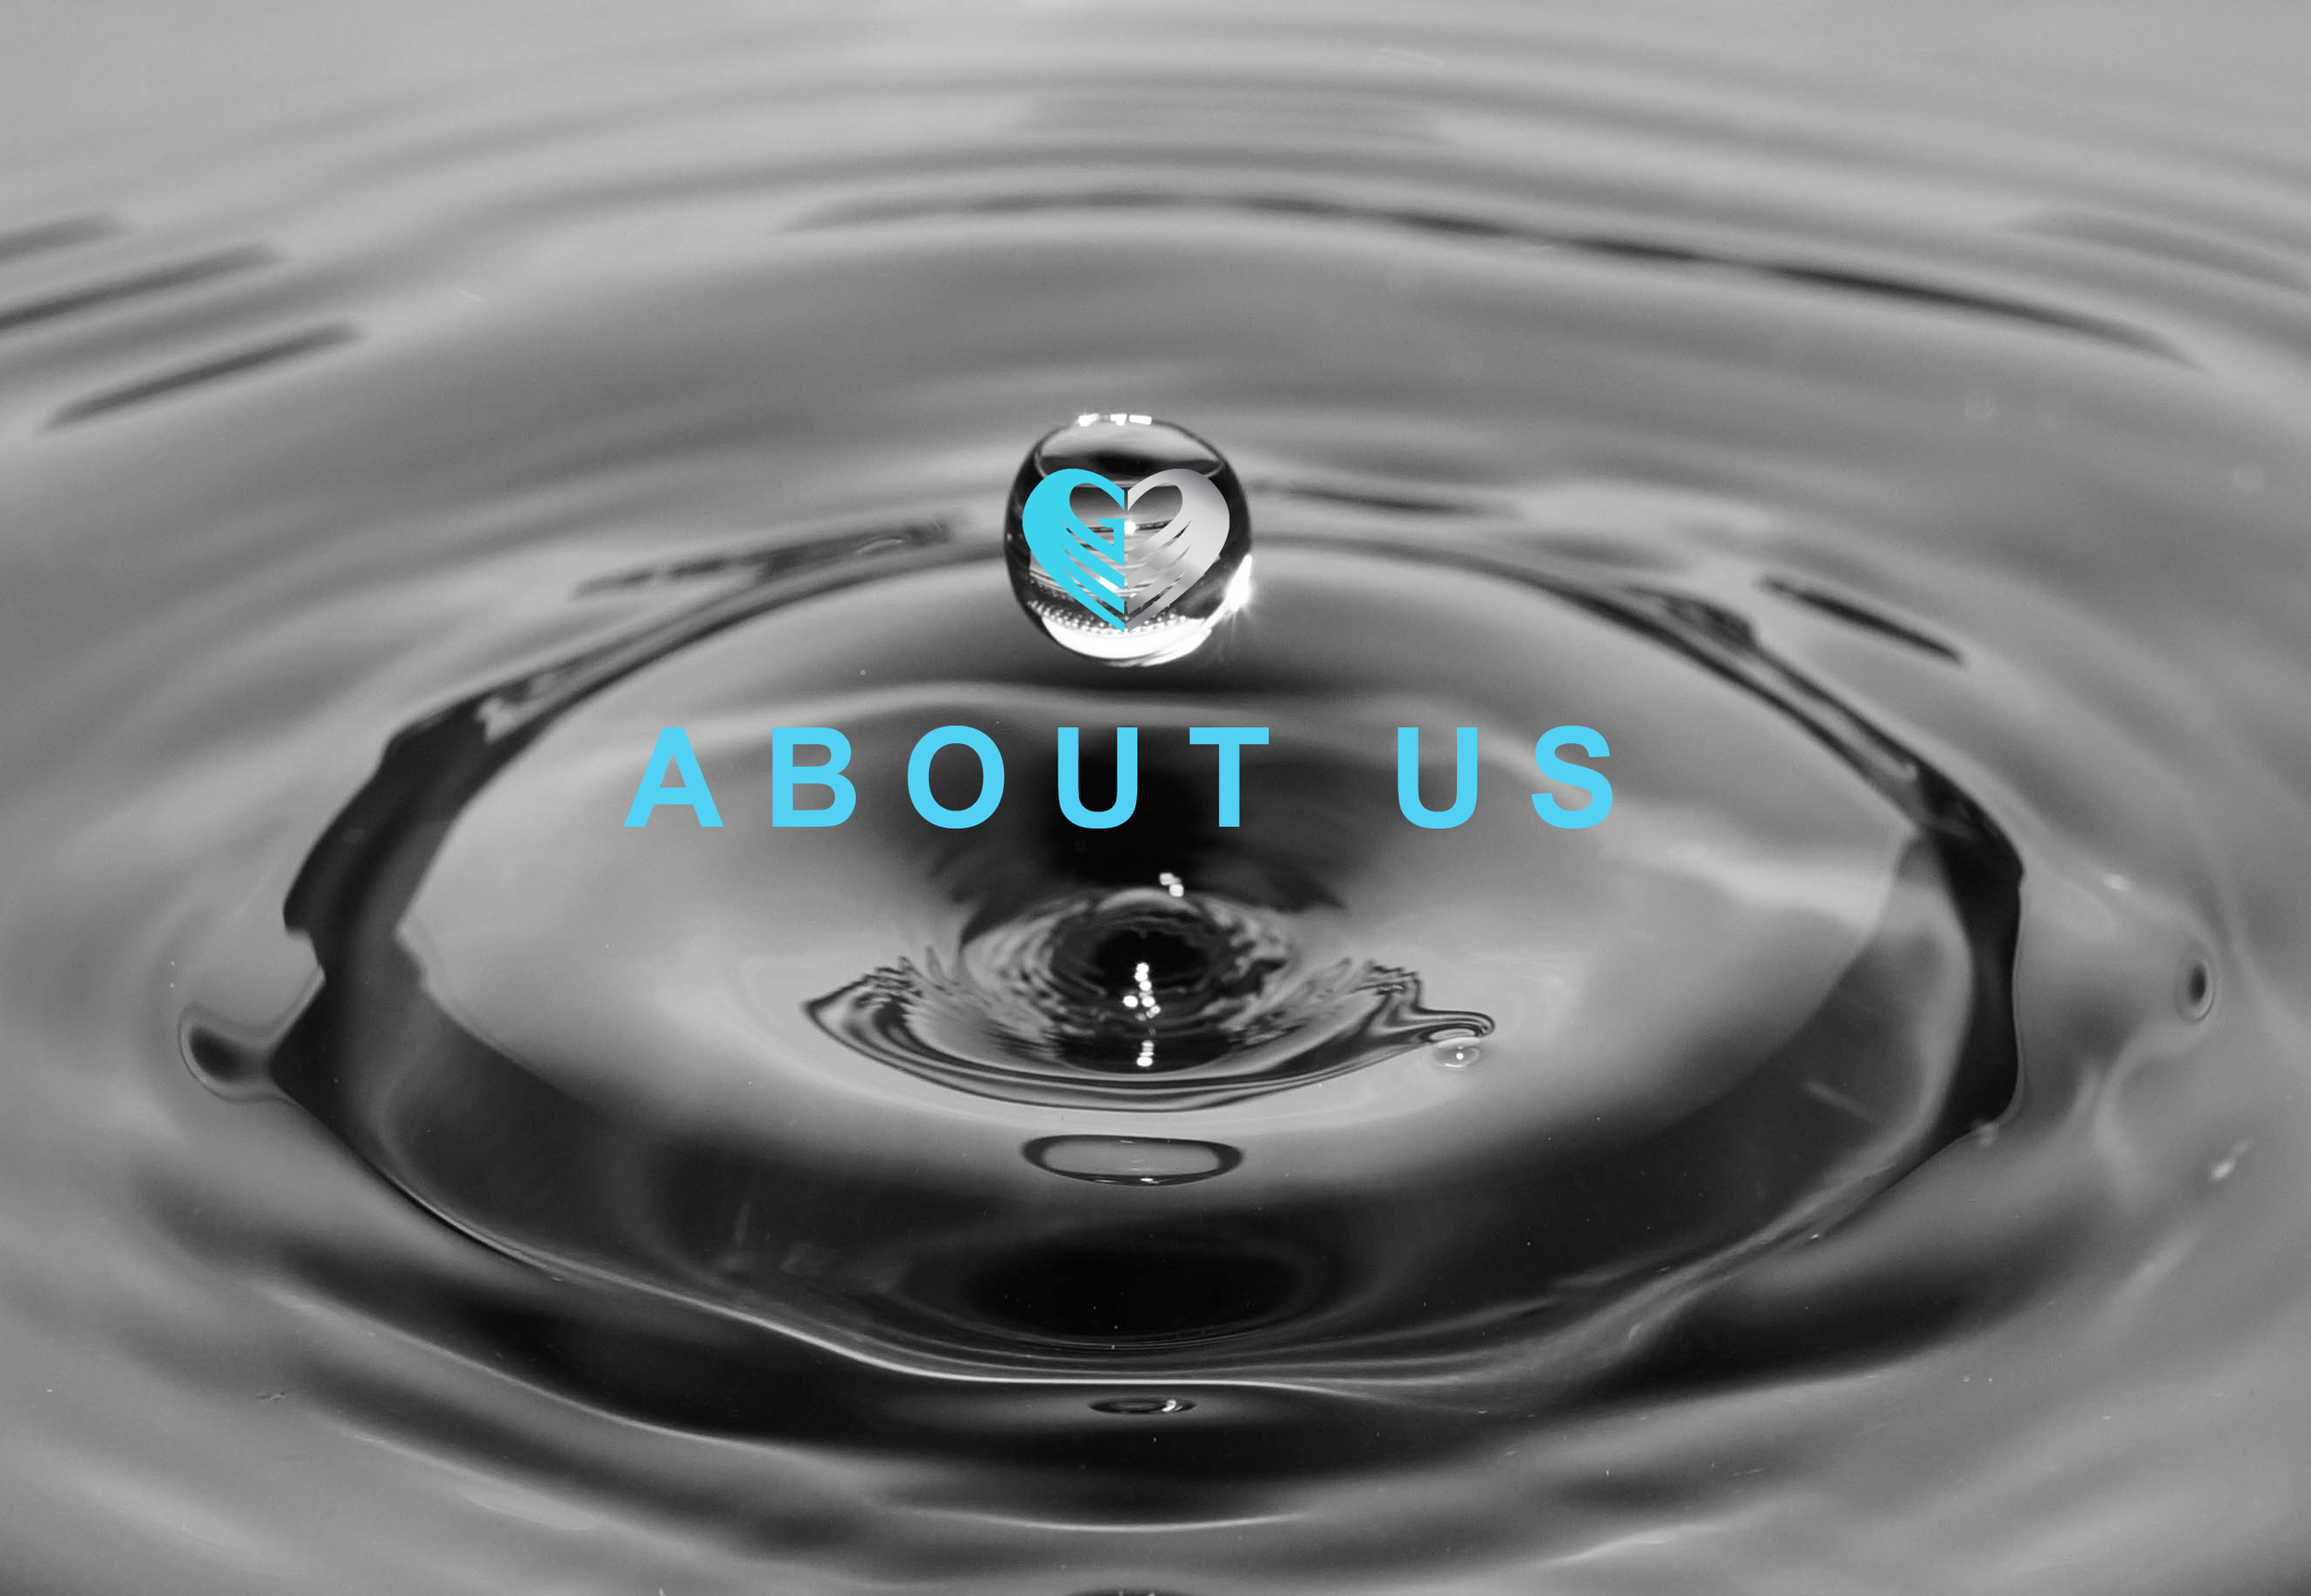 OUR MISSION  |  OUR STORY  |  OUR RIPPLE EFFECT